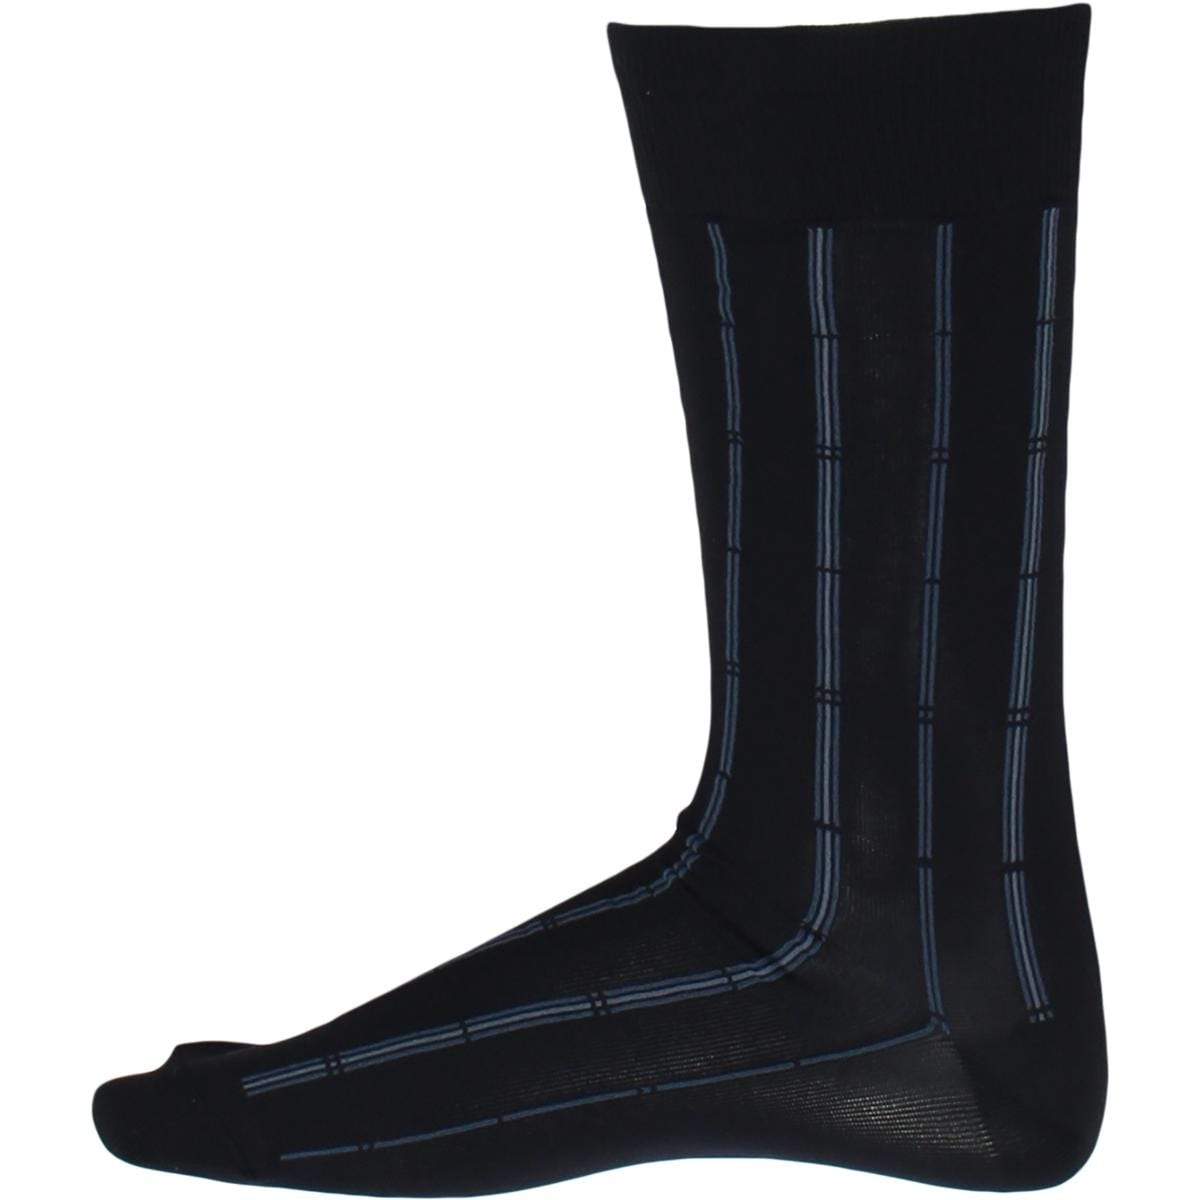 a63461876ee85 Shop Perry Ellis Mens Dress Socks Soft Striped - 7-12 - Free Shipping On  Orders Over $45 - Overstock - 22675908